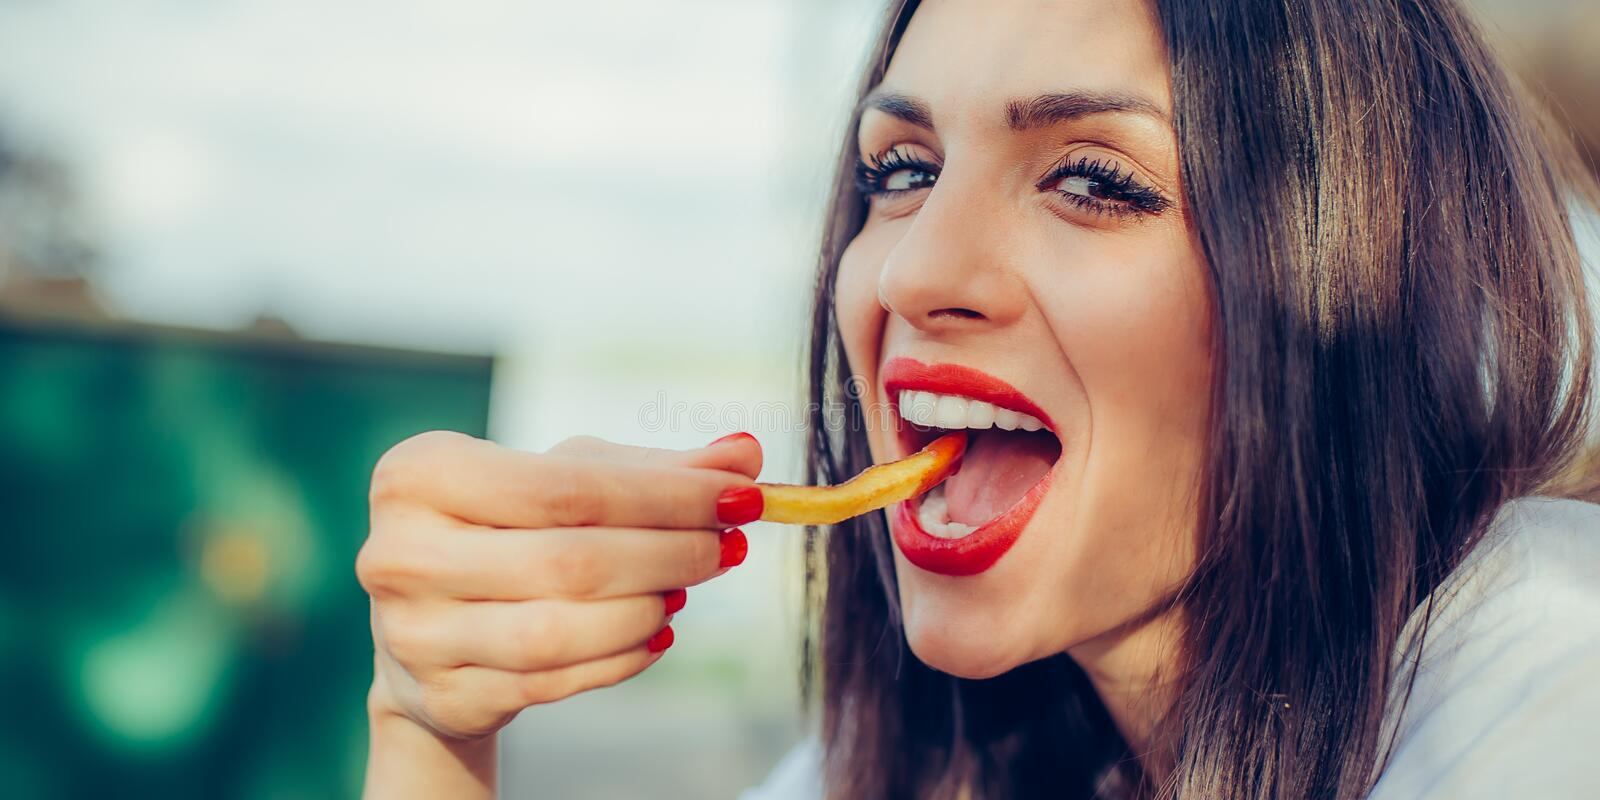 Woman eating french fries potato with ketchup in a restaurant. Young woman eating french fries potato with ketchup in a restaurant, having her lunch break. Close stock photo